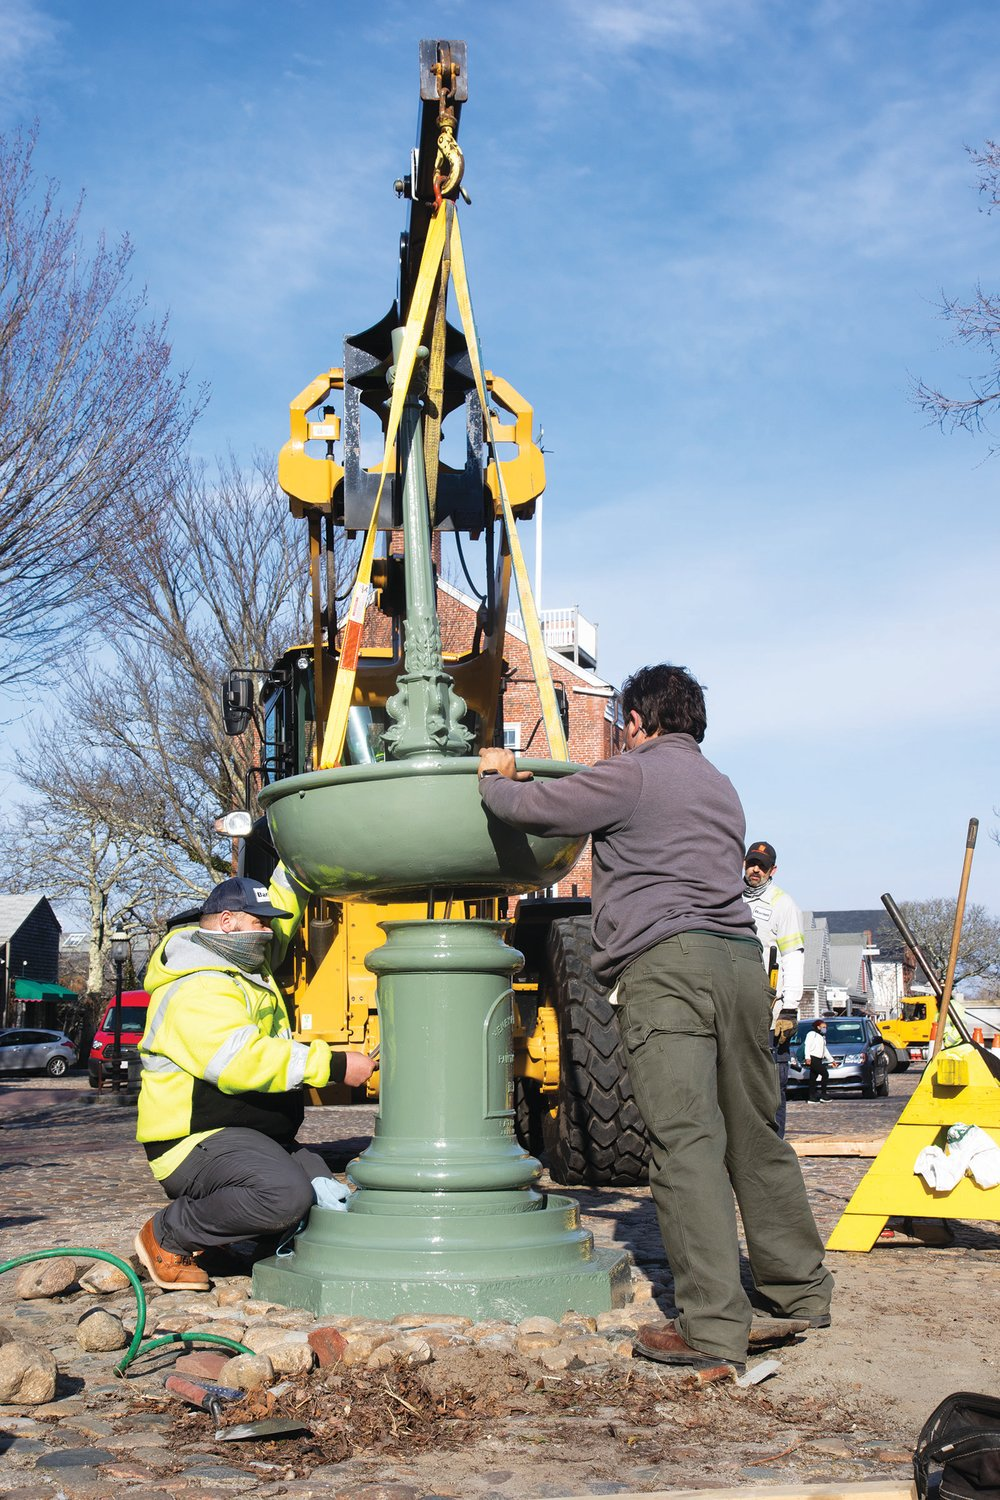 The Max T. Wagner horse fountain returned to its rightful place at the foot of Main Street last Thursday, a little over a year after a driver smashed into it, knocking it down, claiming he was blinded by the sun and didn't see it.